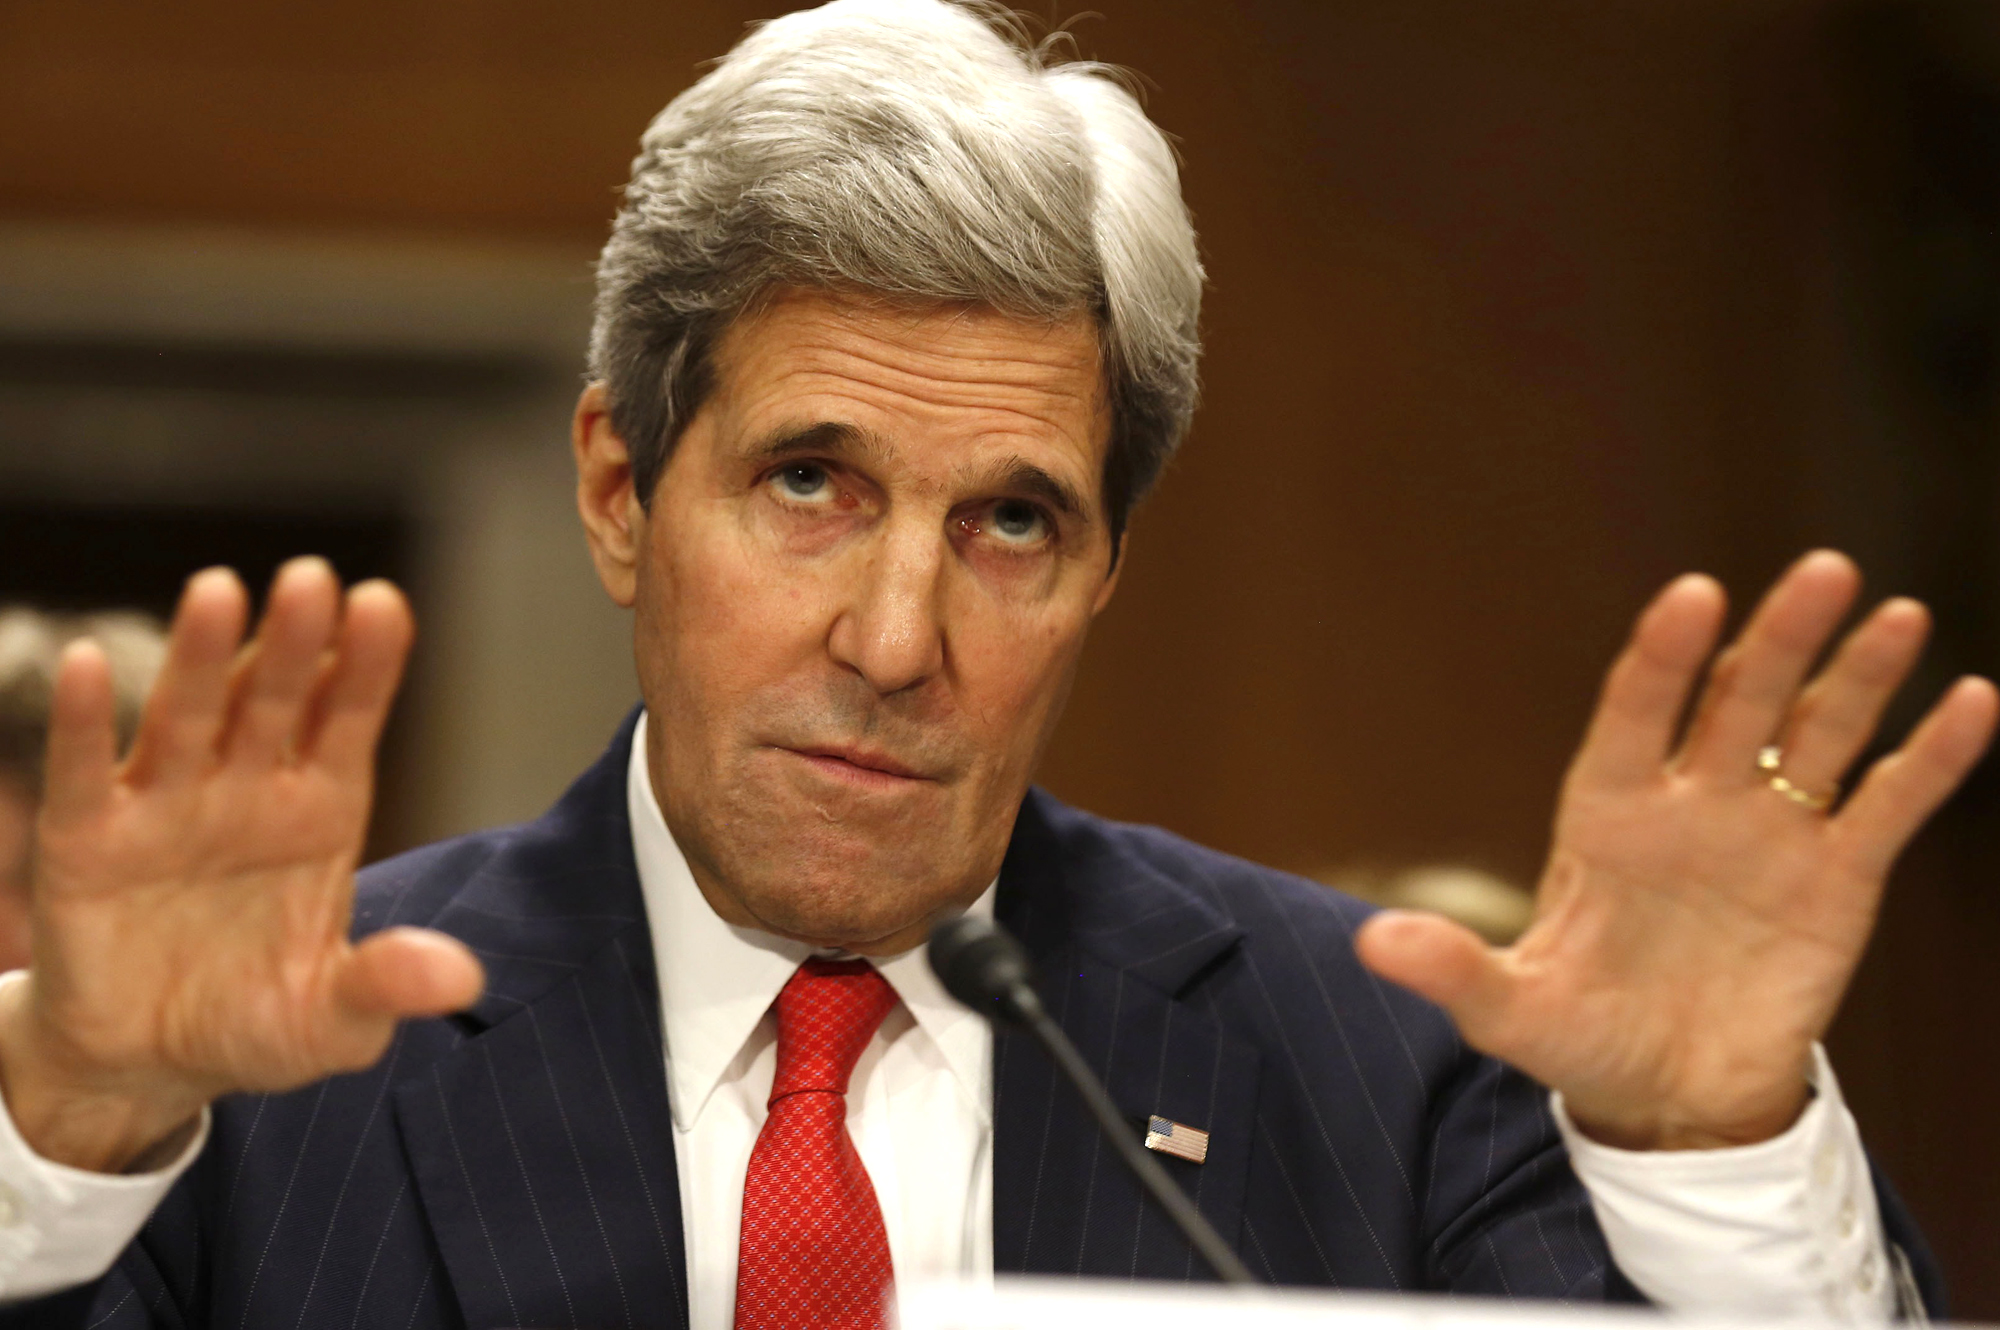 U.S. Secretary of State John Kerry testifies at the Senate Foreign Relations Committee while on Capitol Hill in Washington